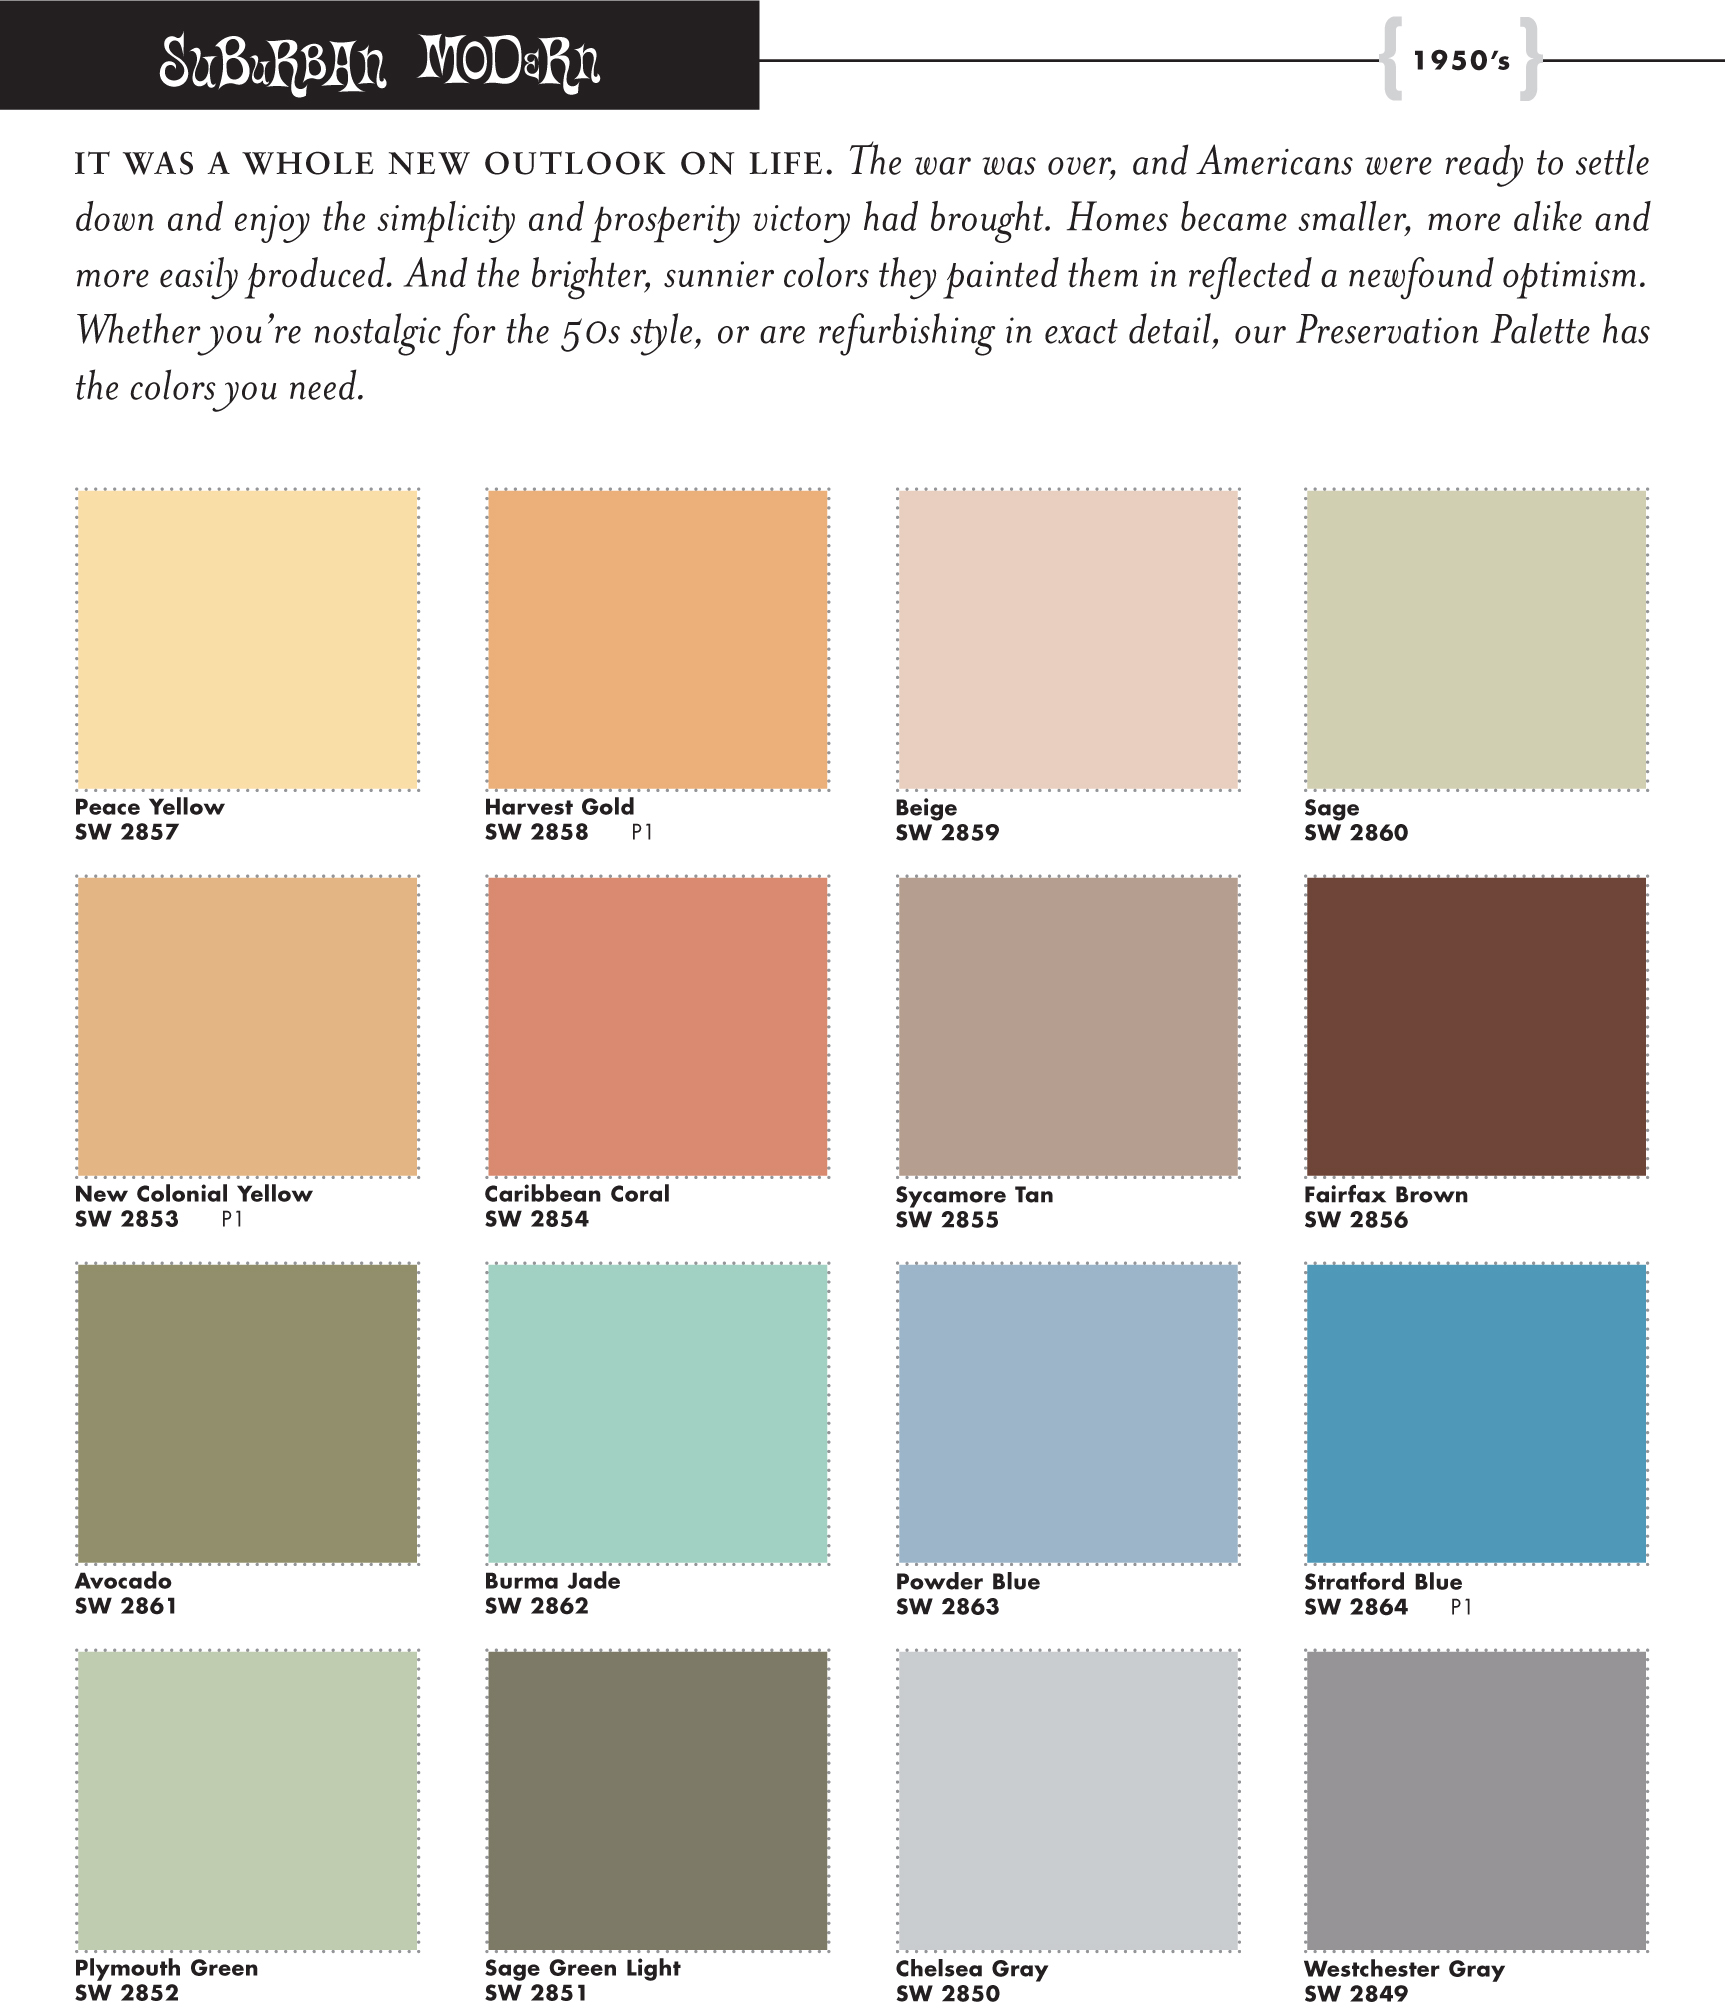 Sherwin Williams Suburban Modern Preservation Palette